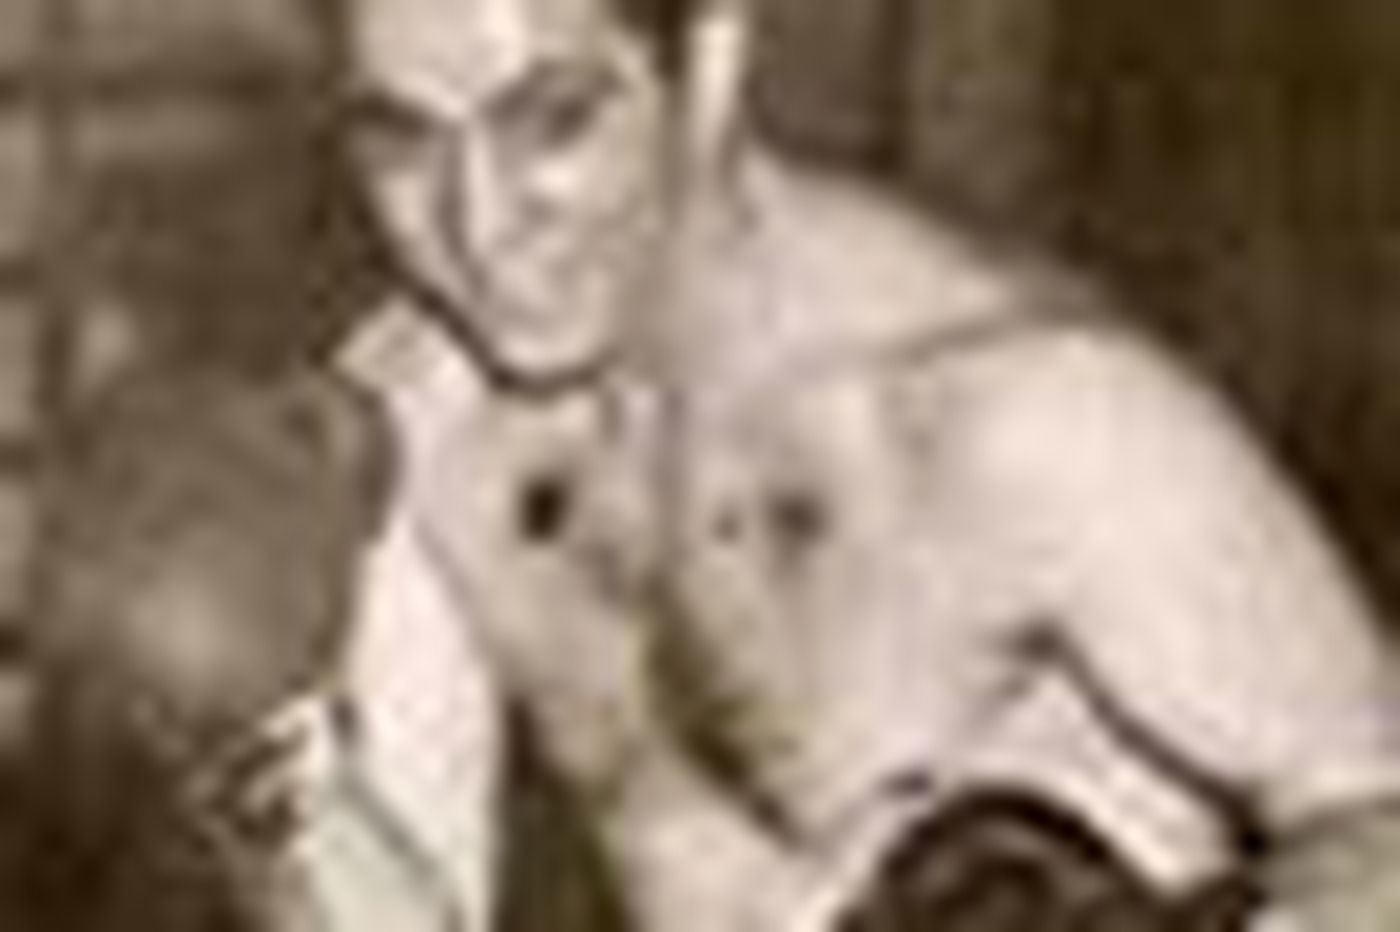 Tommy Ruth, 87, prizefighter, politician, and performer